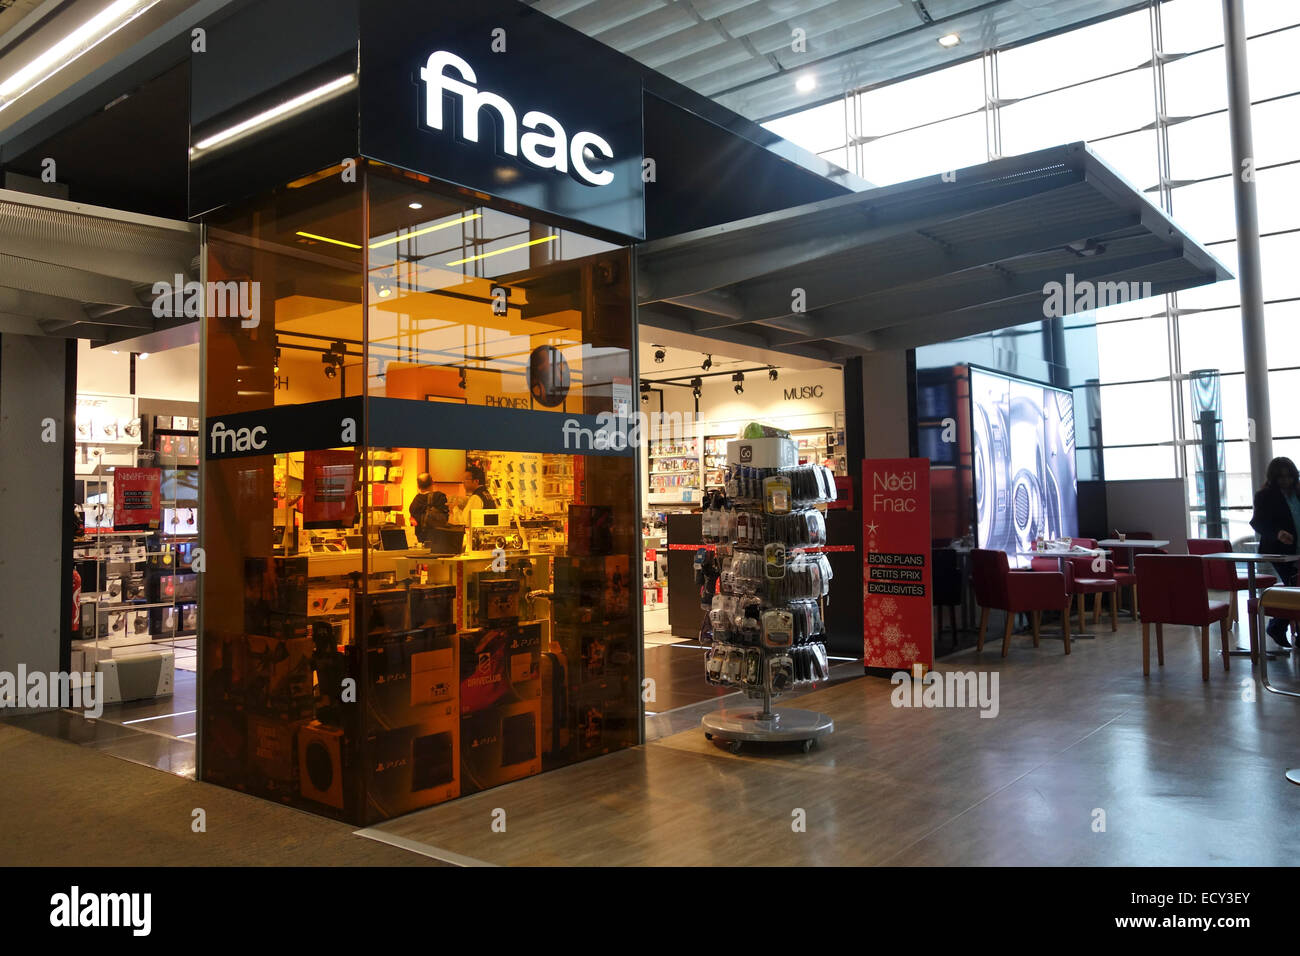 FNAC Department Store at Airport Charles de Gaulle, Paris ...